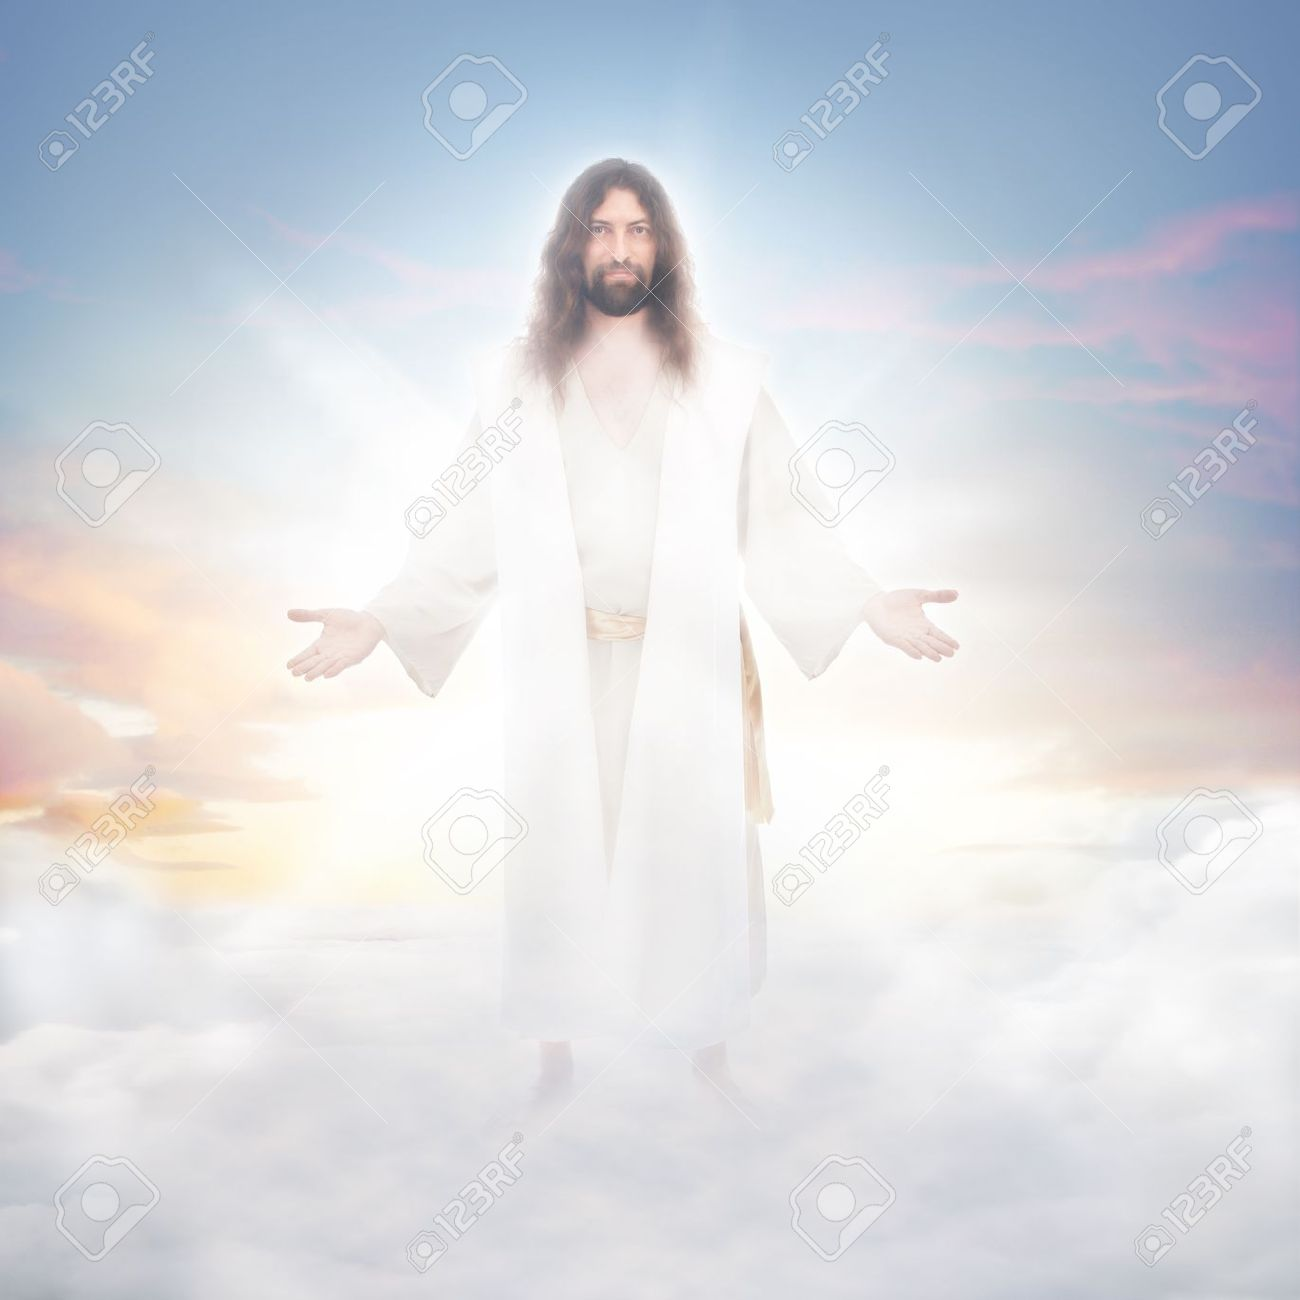 200 Pictures of Jesus Christ, God - Divine]